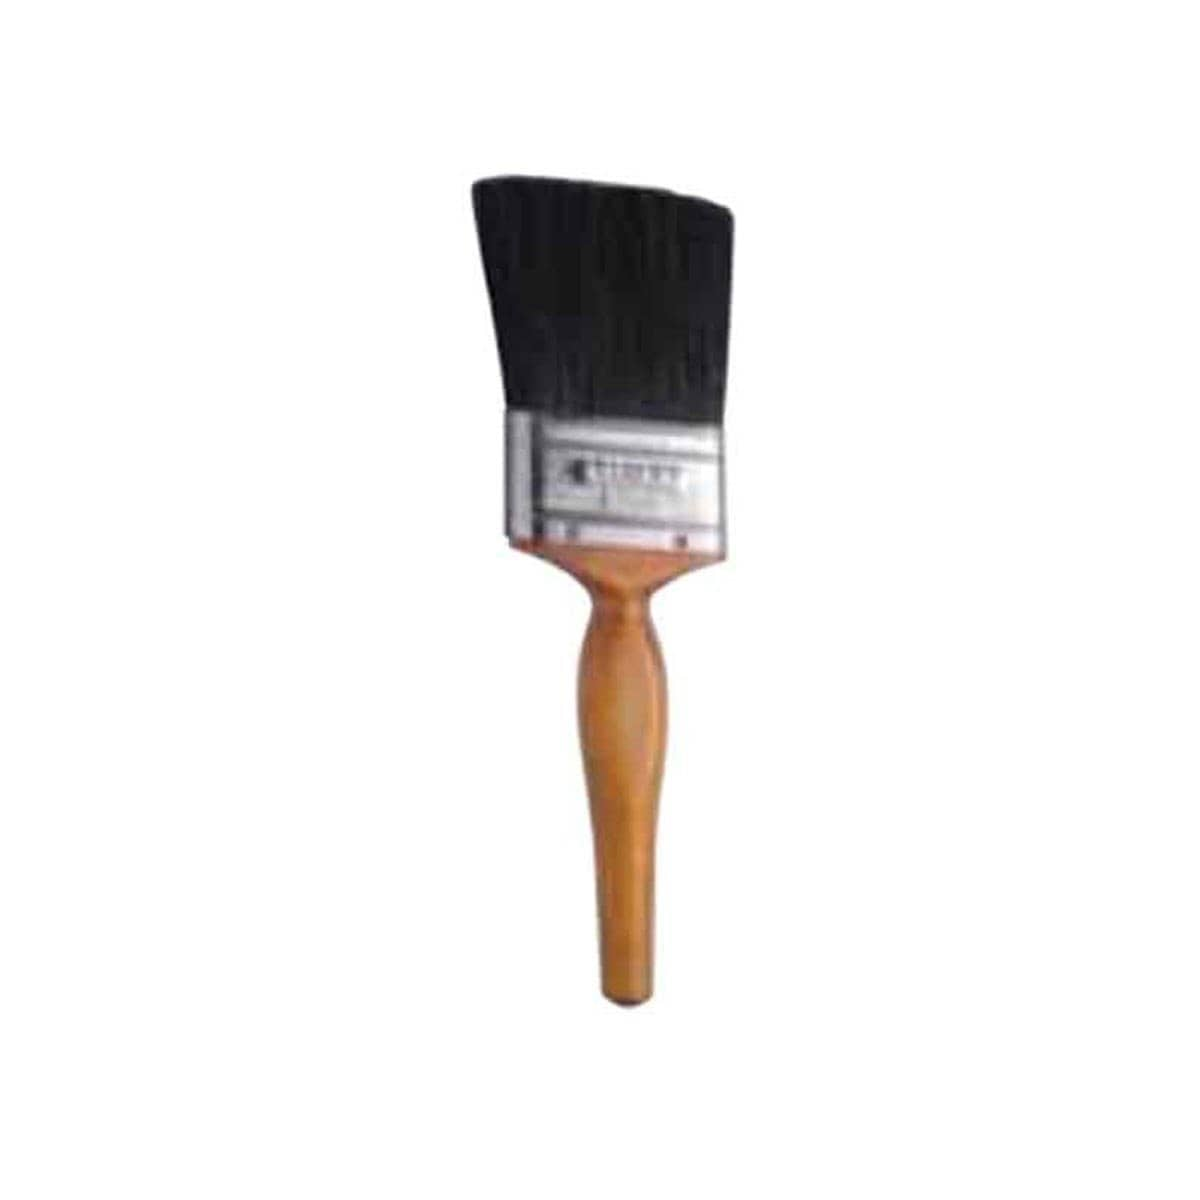 STANLEY AllMaster Paint Brush 3/4in 19mm (29-030-1)